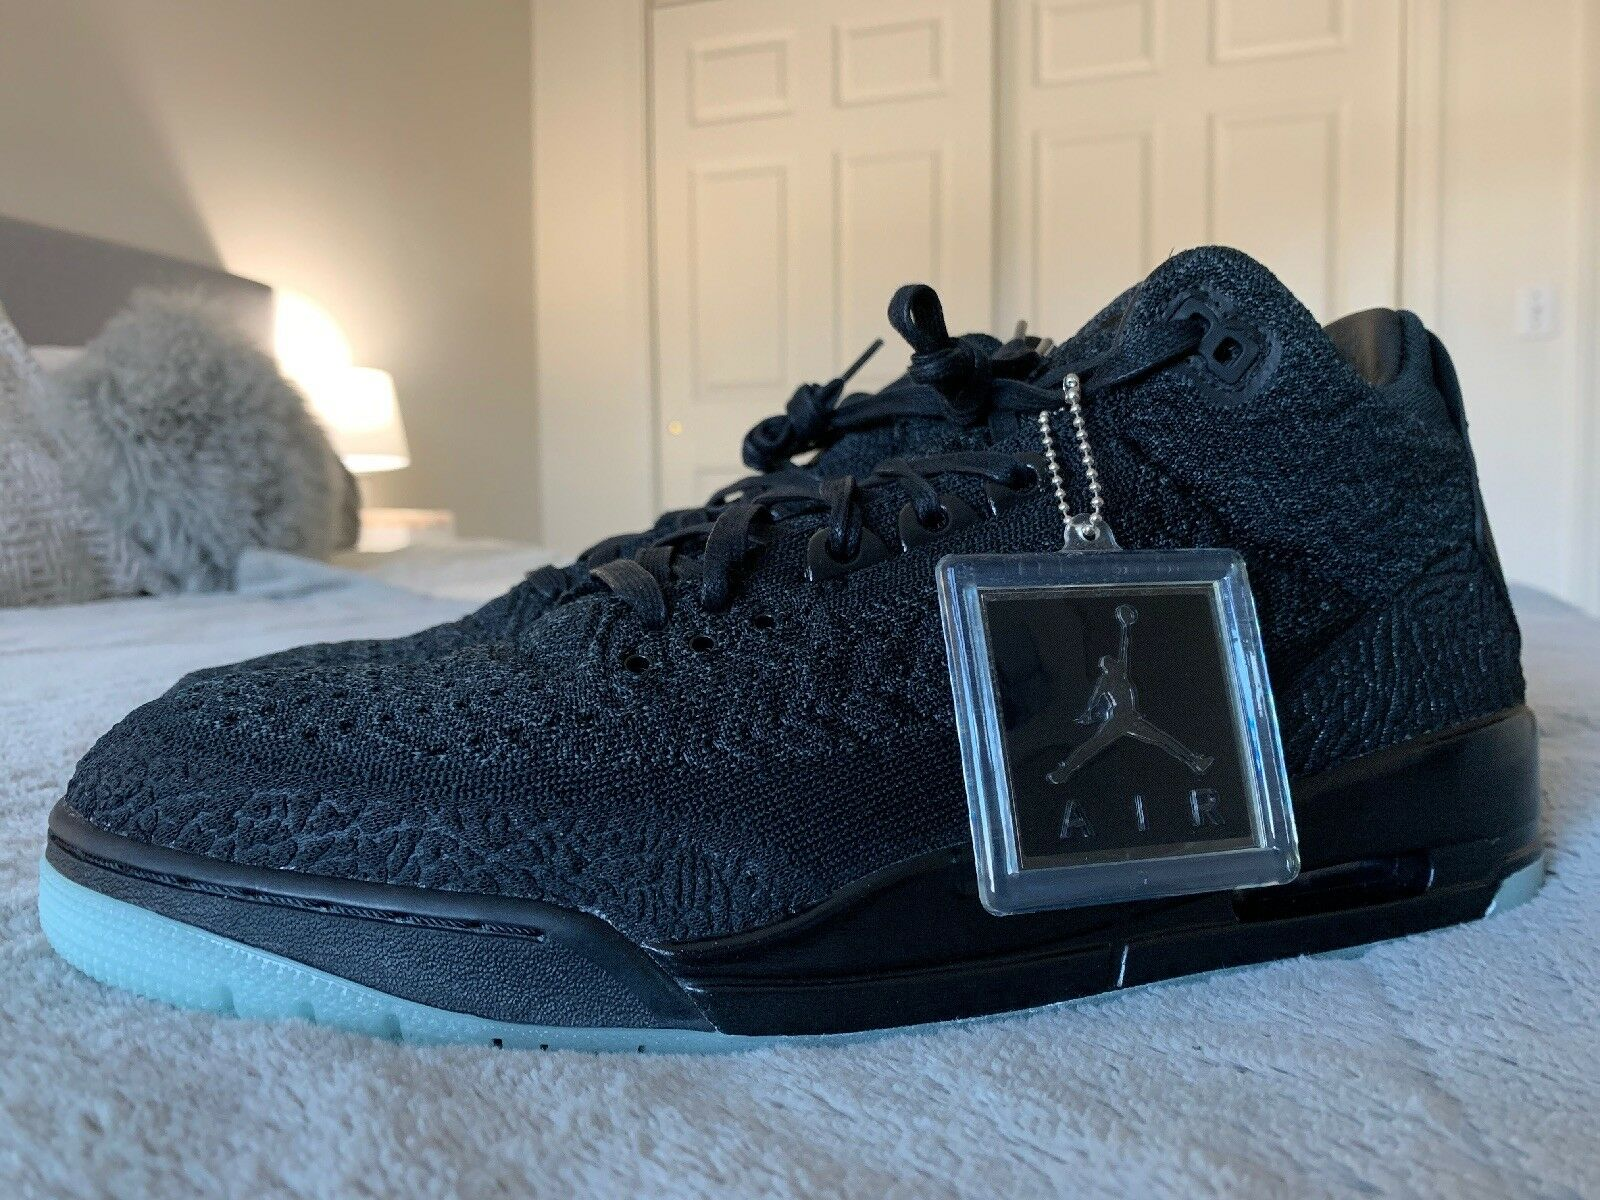 Air Jordan 3 Retro Flyknit Size 13